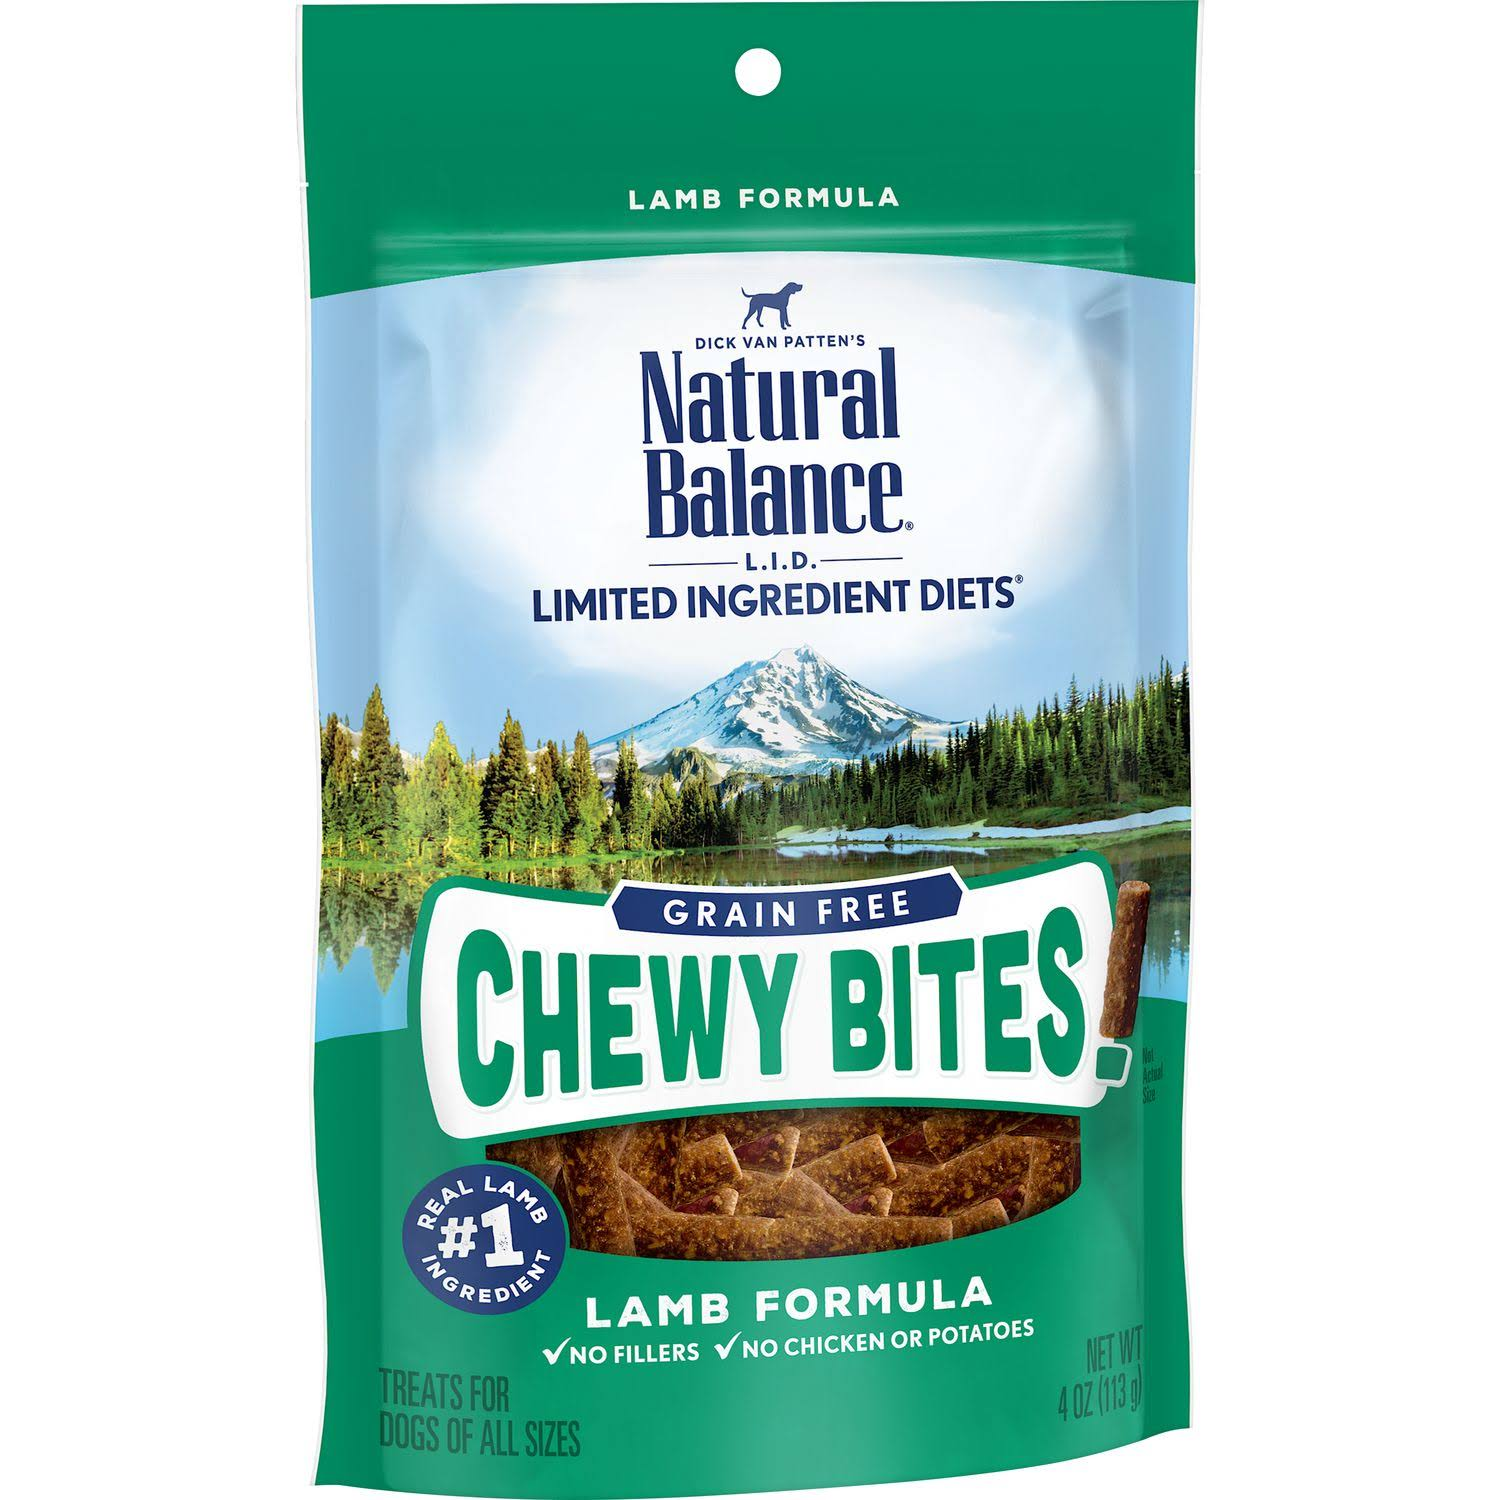 Natural Balance L.I.D. Limited Ingredient Diets Grain Free Chewy Bites Lamb Formula Dog Treats 4oz